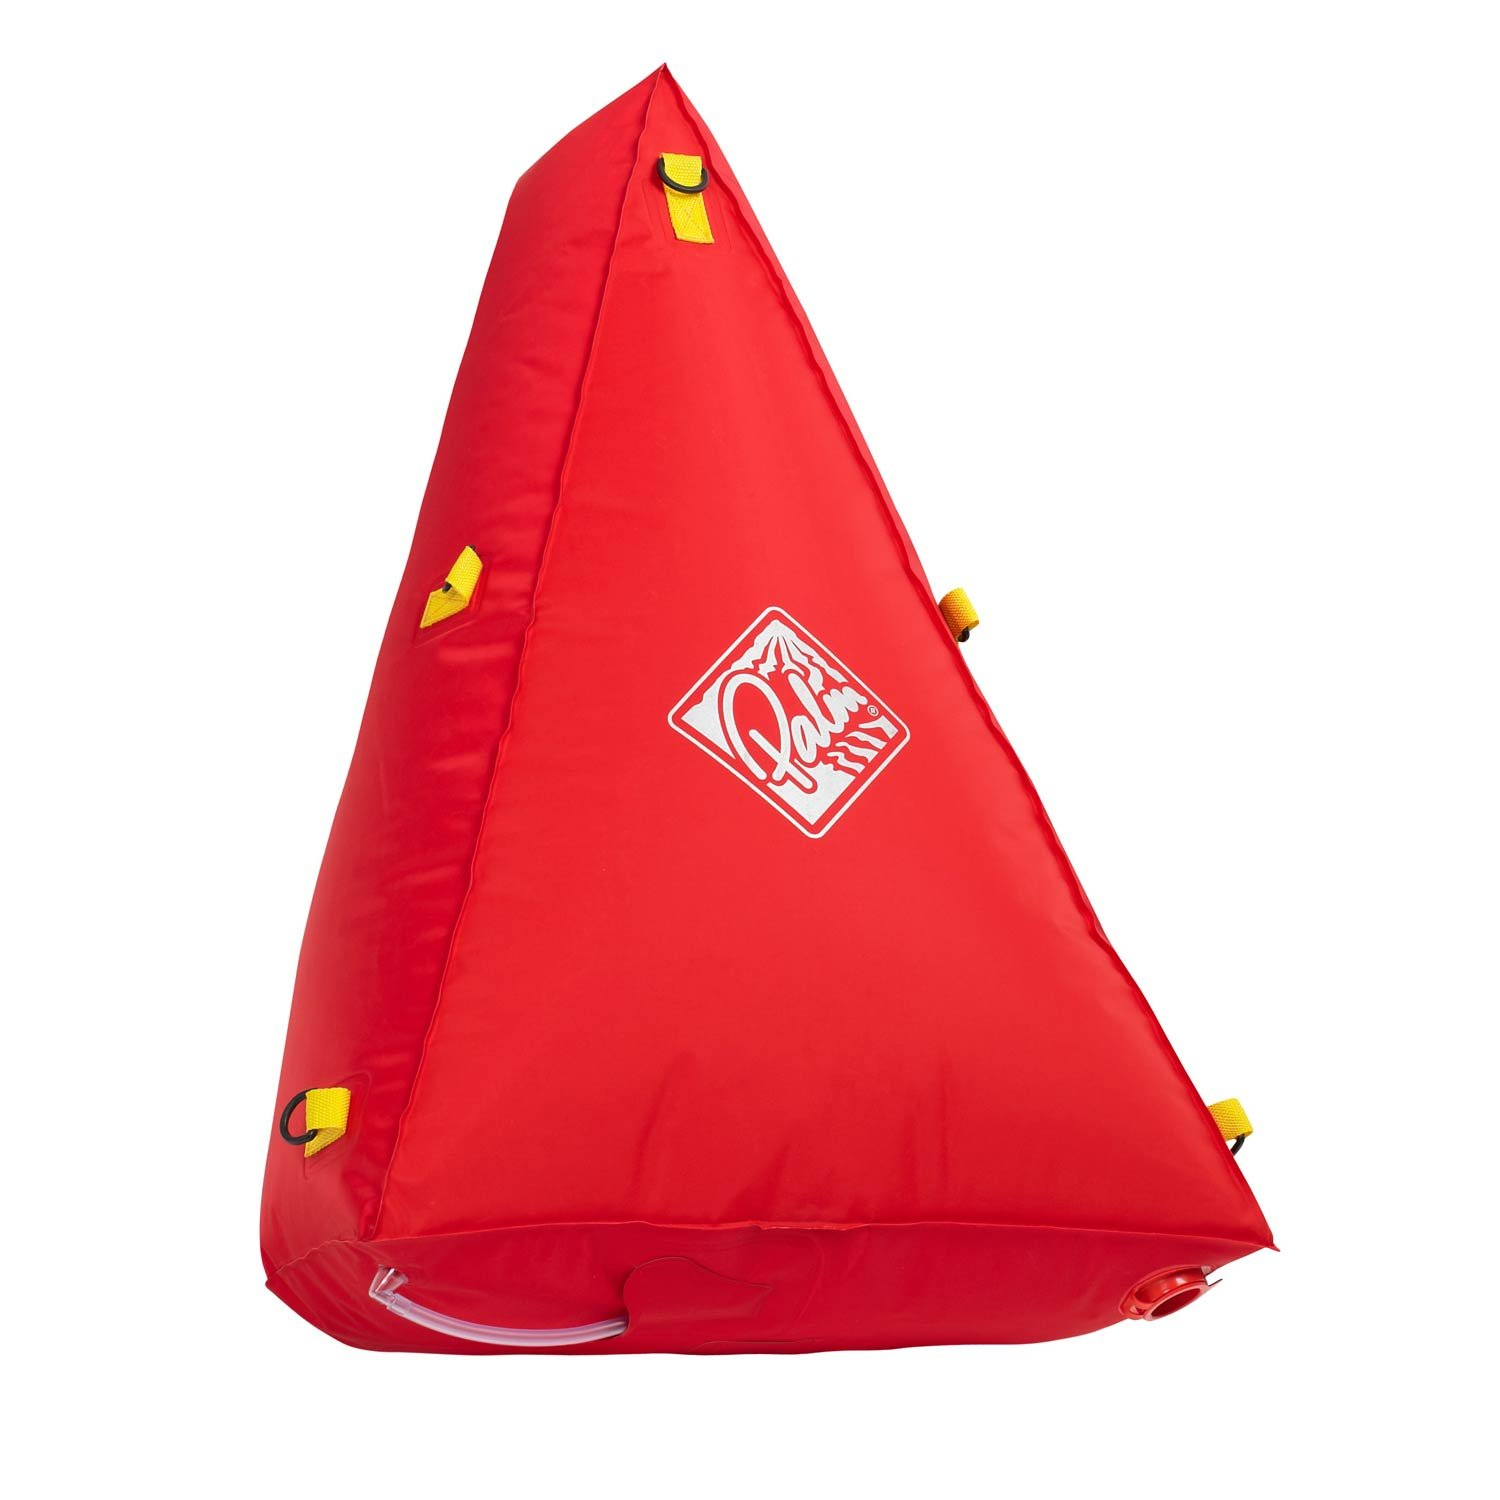 Palm Canoe Air Bag - 32'' (Small) RED FB401 Colour - Red